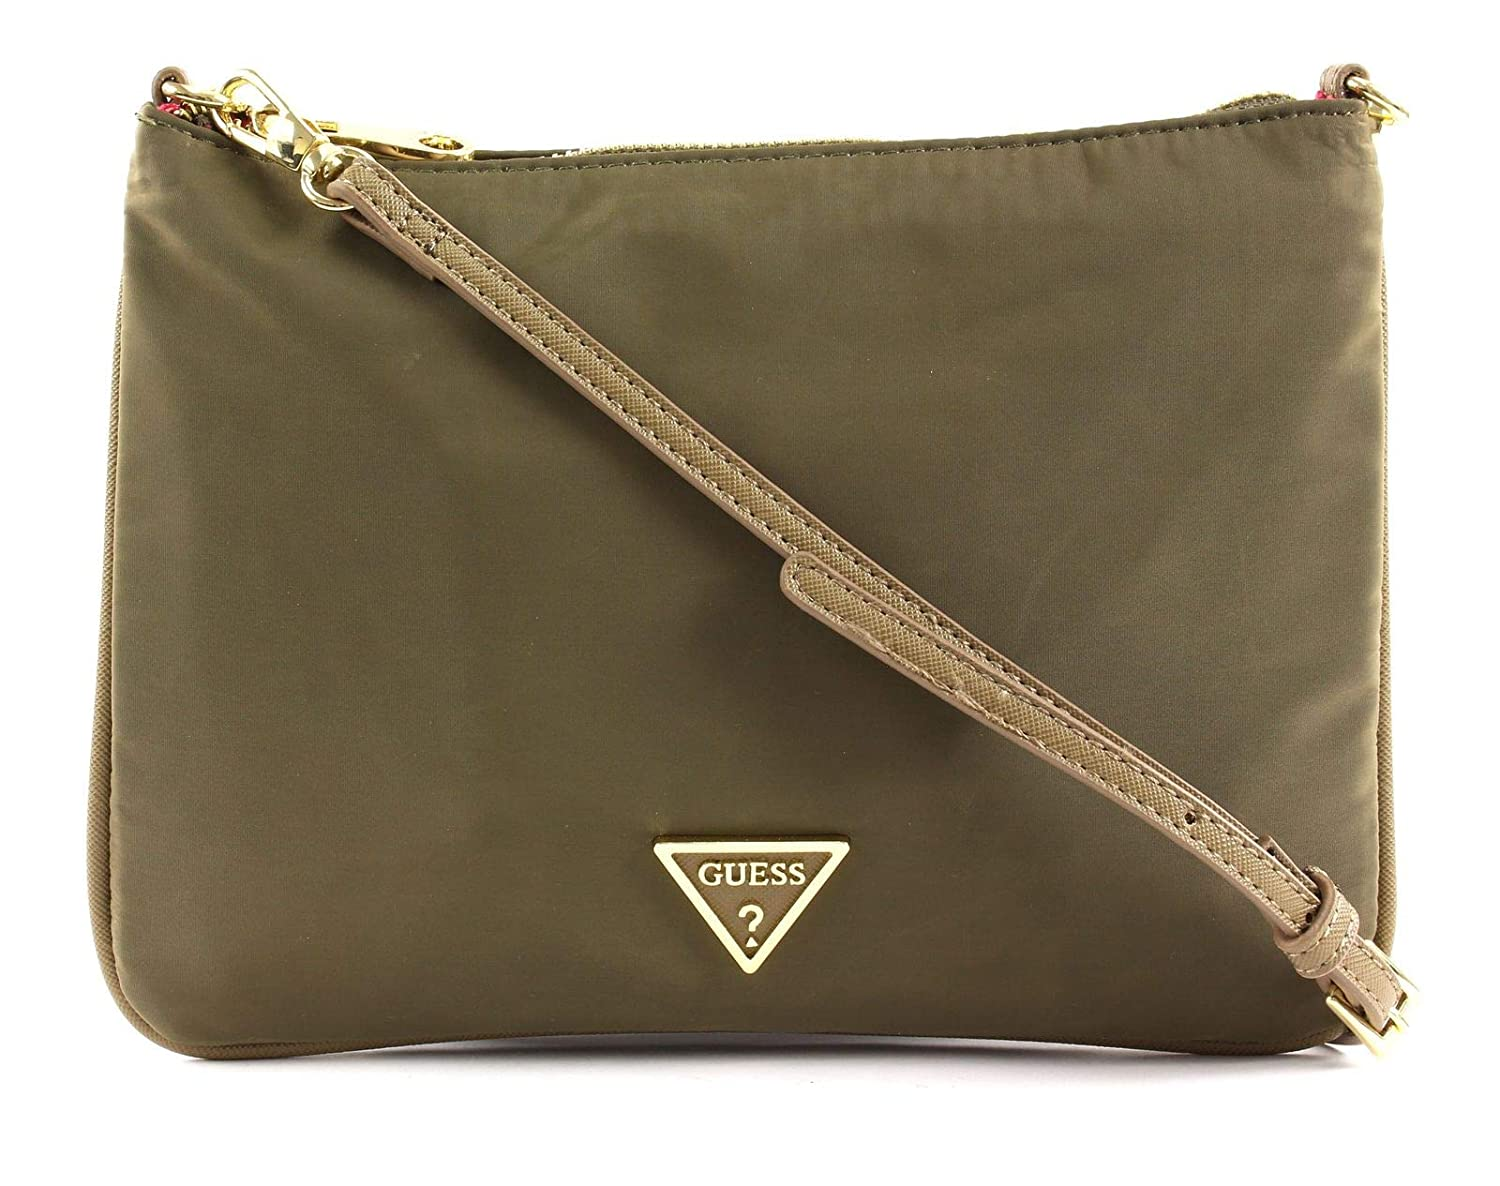 Guess Damen Did I Say 90 Shopper, 24x18x1 Centimeters Grün (Green) PWDIDIP8302